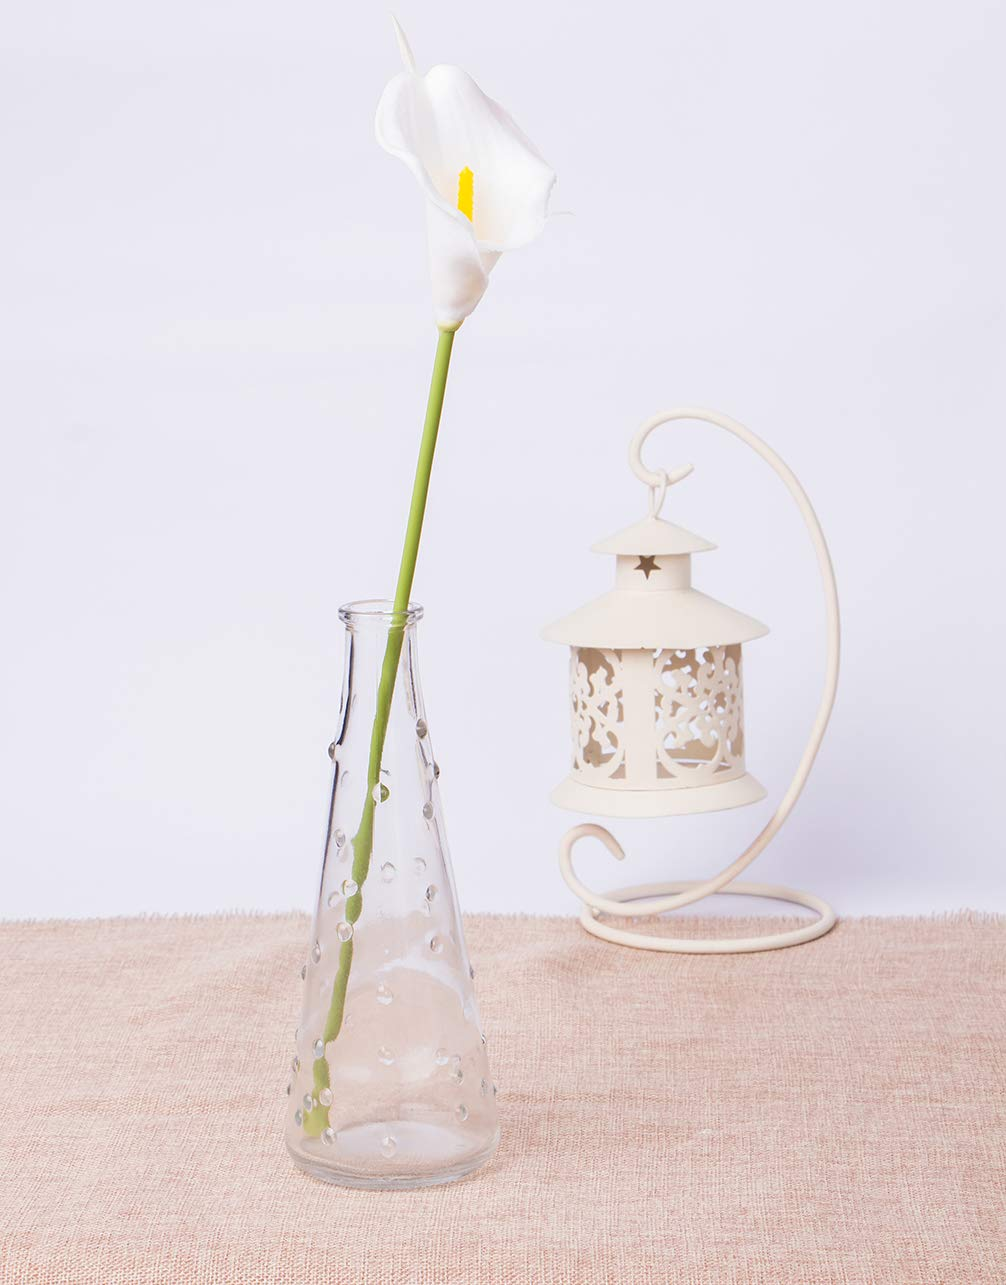 Foraineam-Pack-of-30-Calla-Lily-Artificial-Flowers-Bridal-Wedding-Bouquets-Home-Party-Floral-Decor-Real-Touch-Fake-Flowers-White